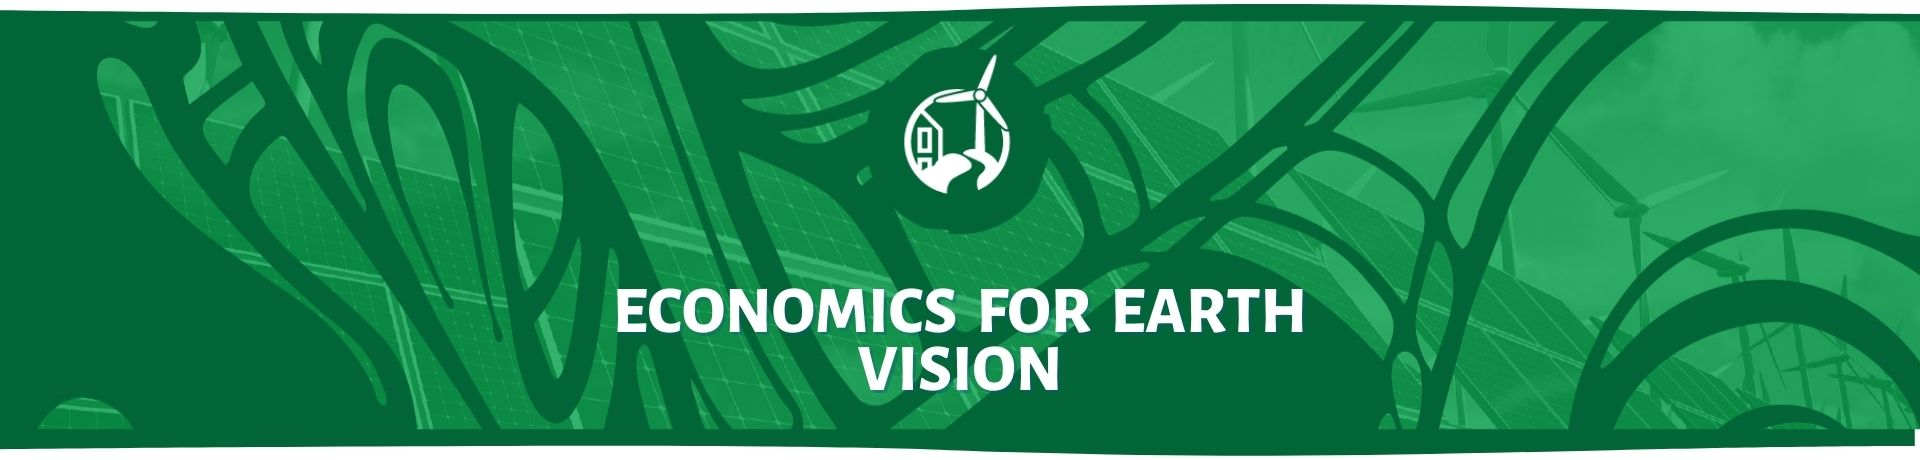 Economics for Earth Vision